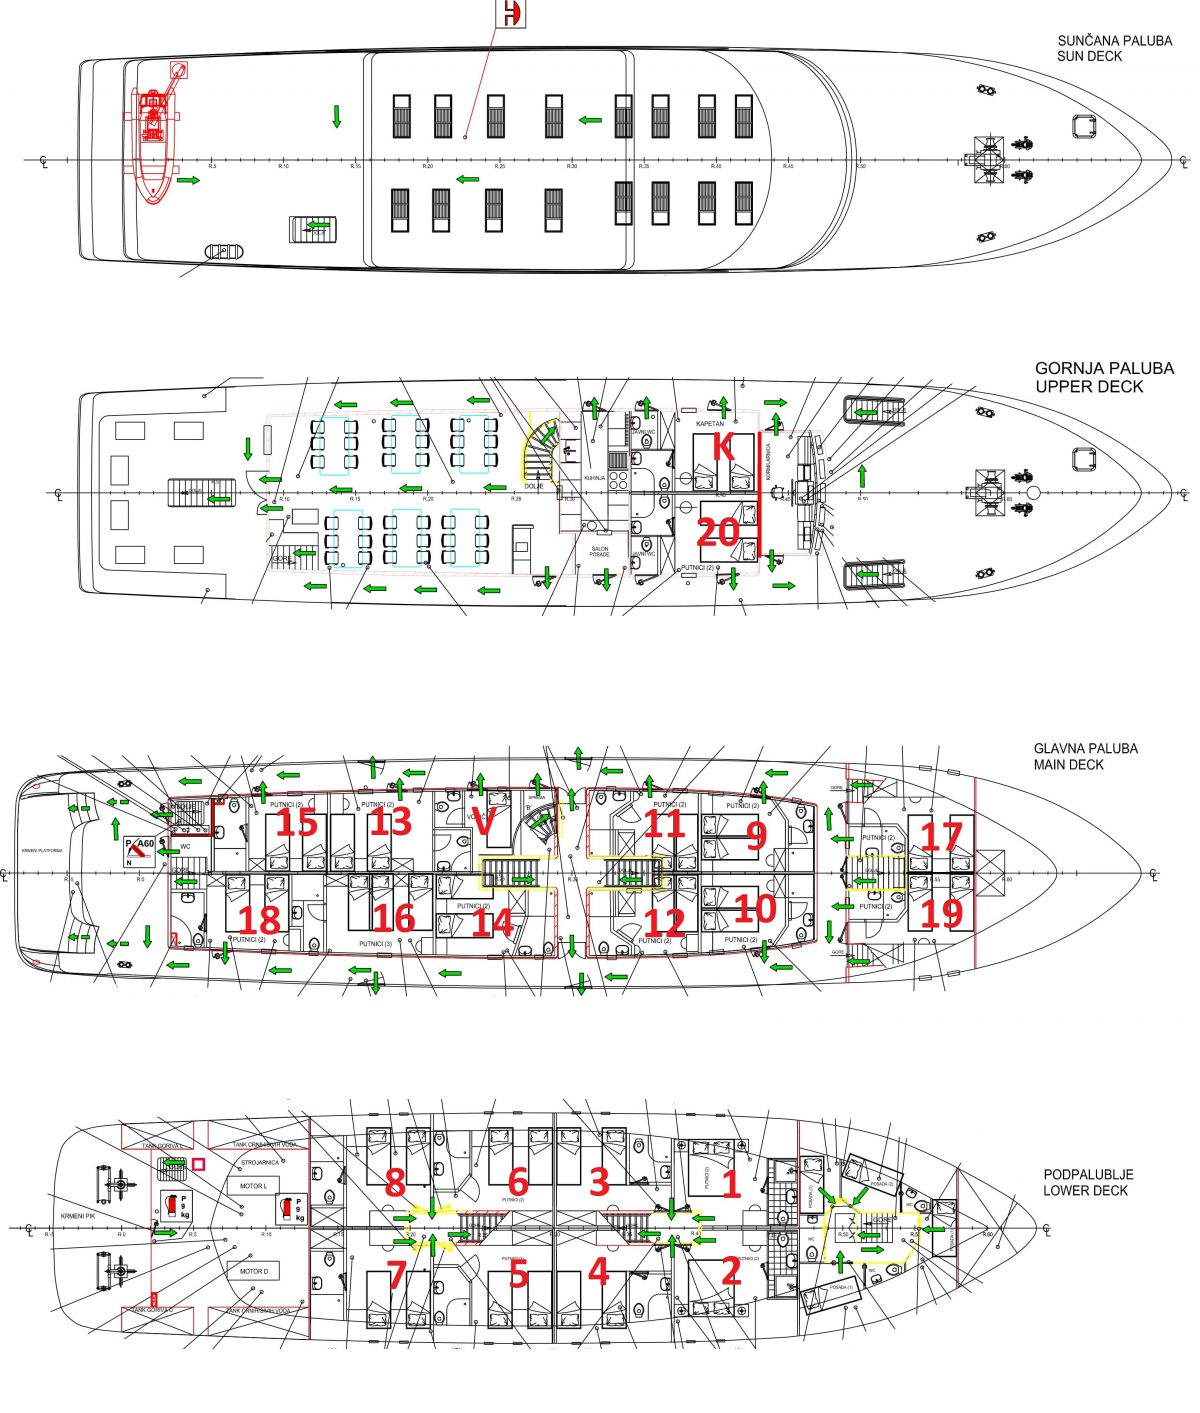 MS Dream Premium Superior Croatian Cruise Ship Deck plan